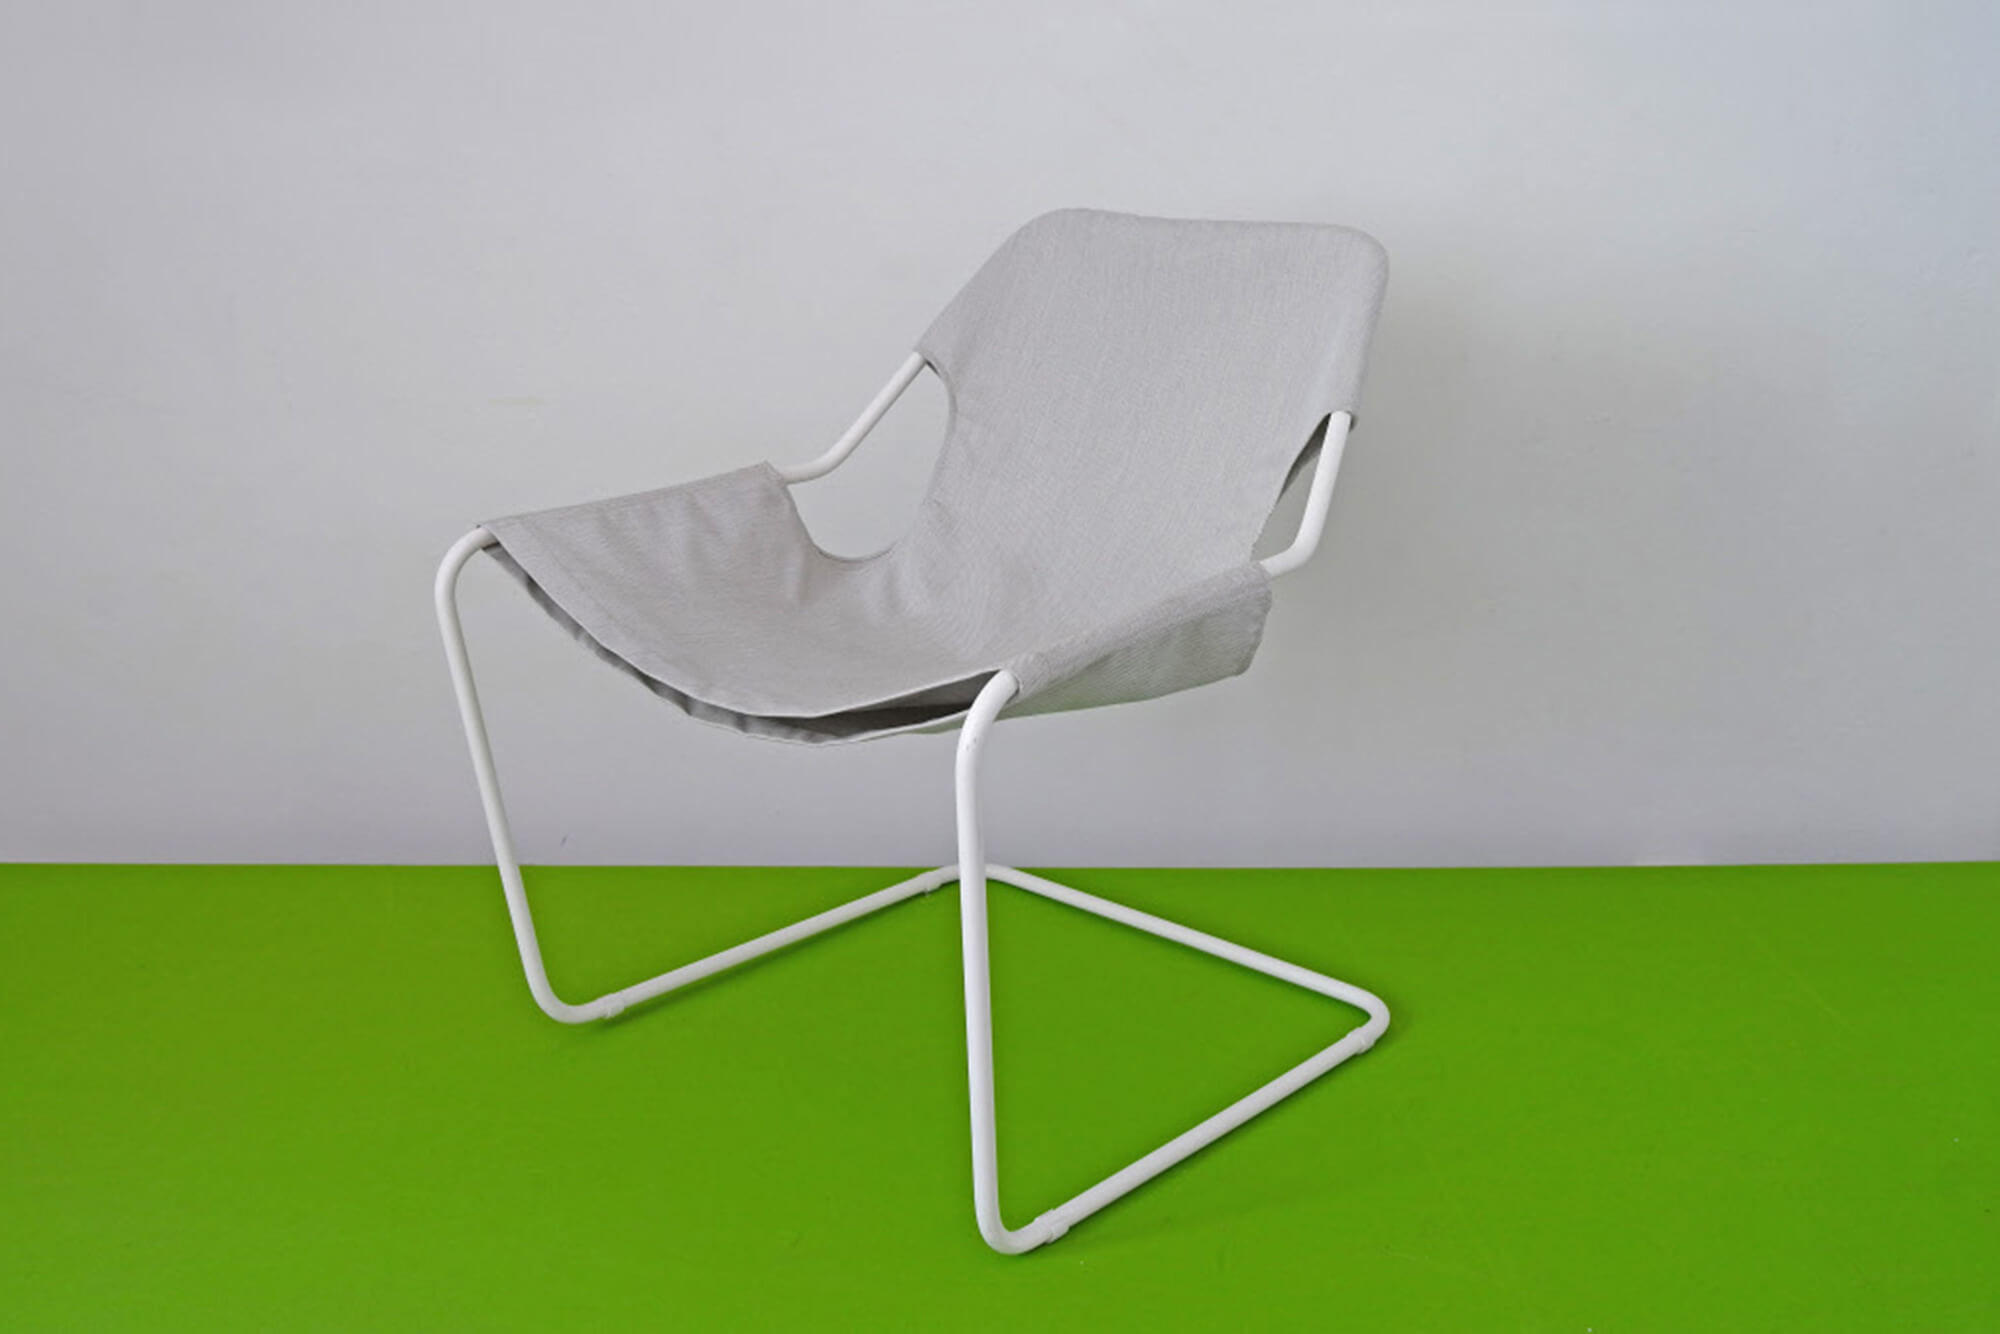 A chair with grey Sunbrella fabrics and a white metal body